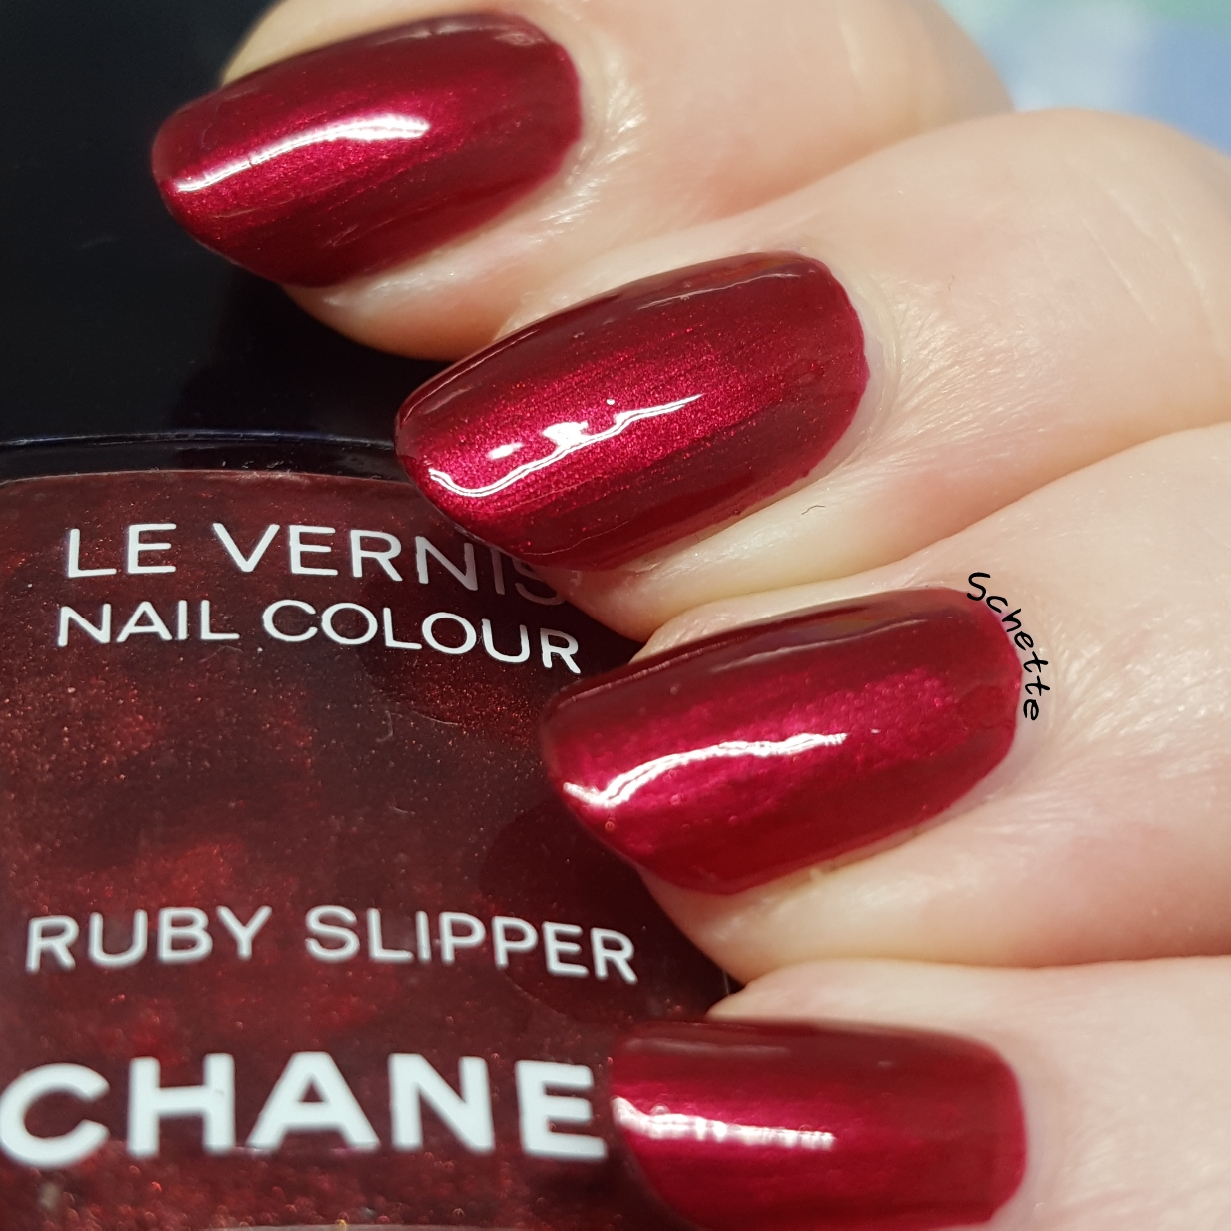 Chanel - Ruby Slipper